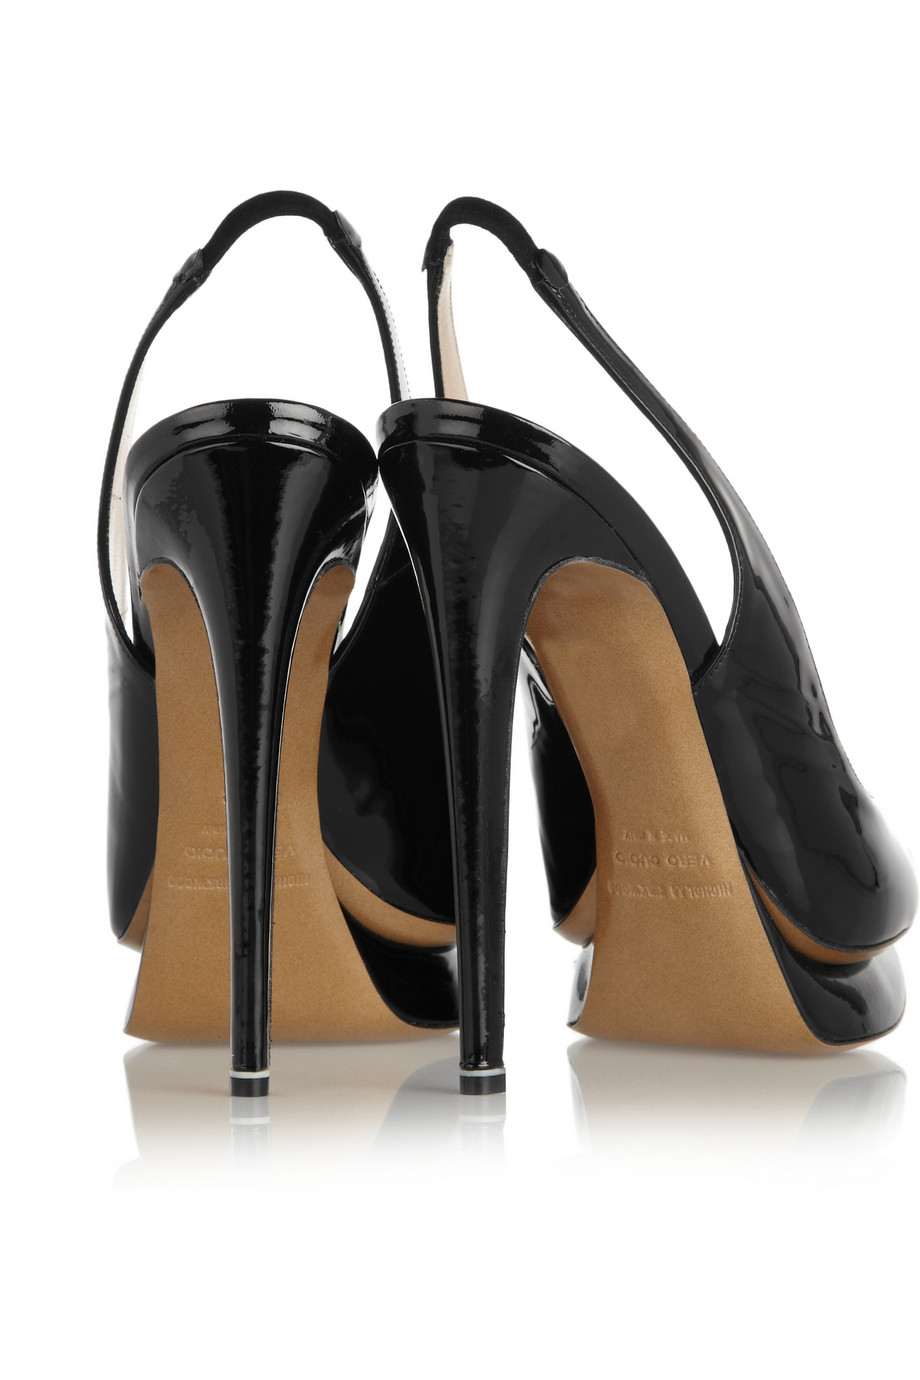 Lyst Nicholas Kirkwood Patent Leather Slingback Pumps In